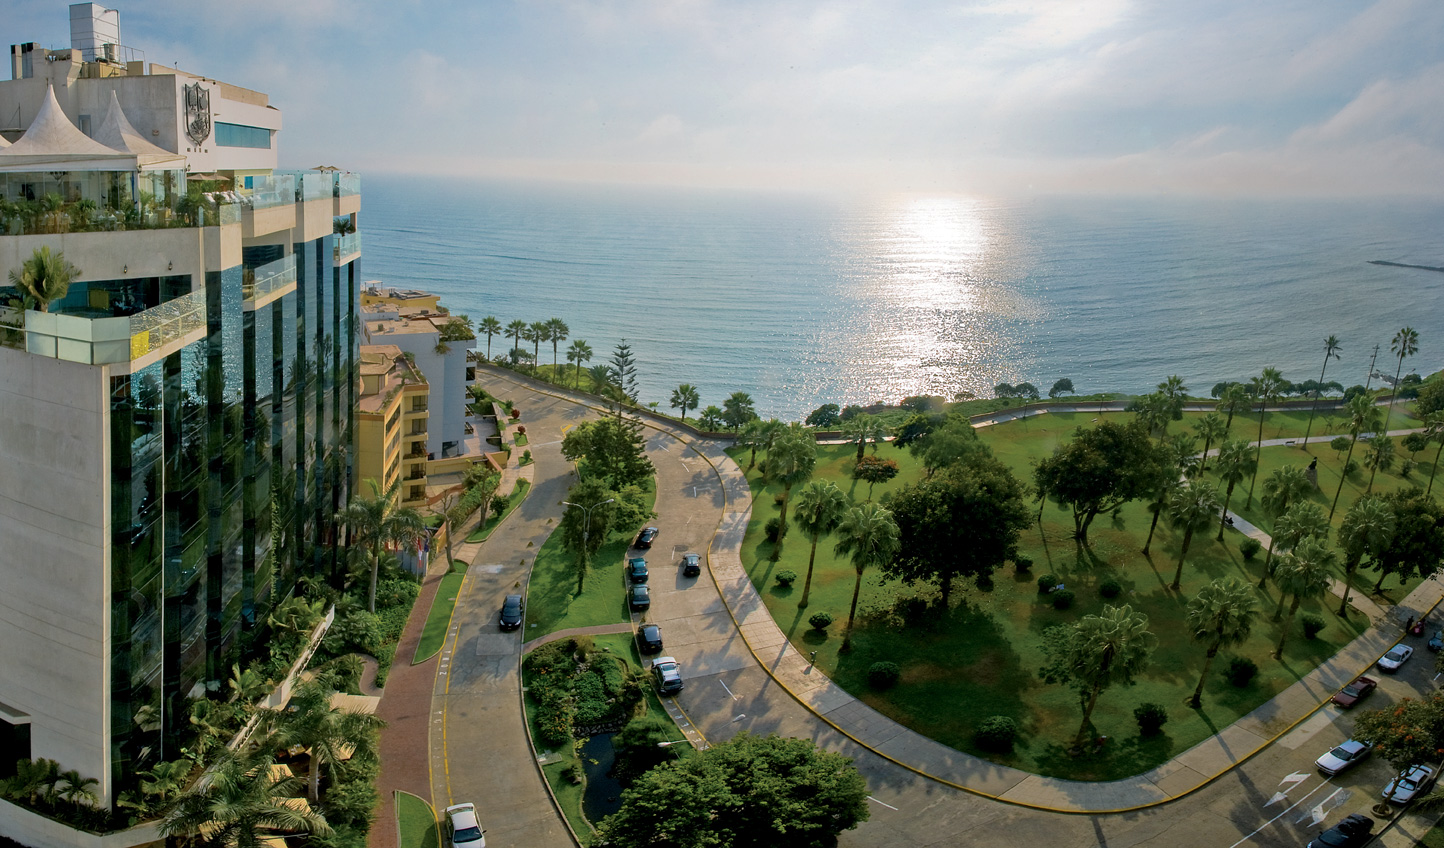 Explore Lima from its most exclusive neighbourhood